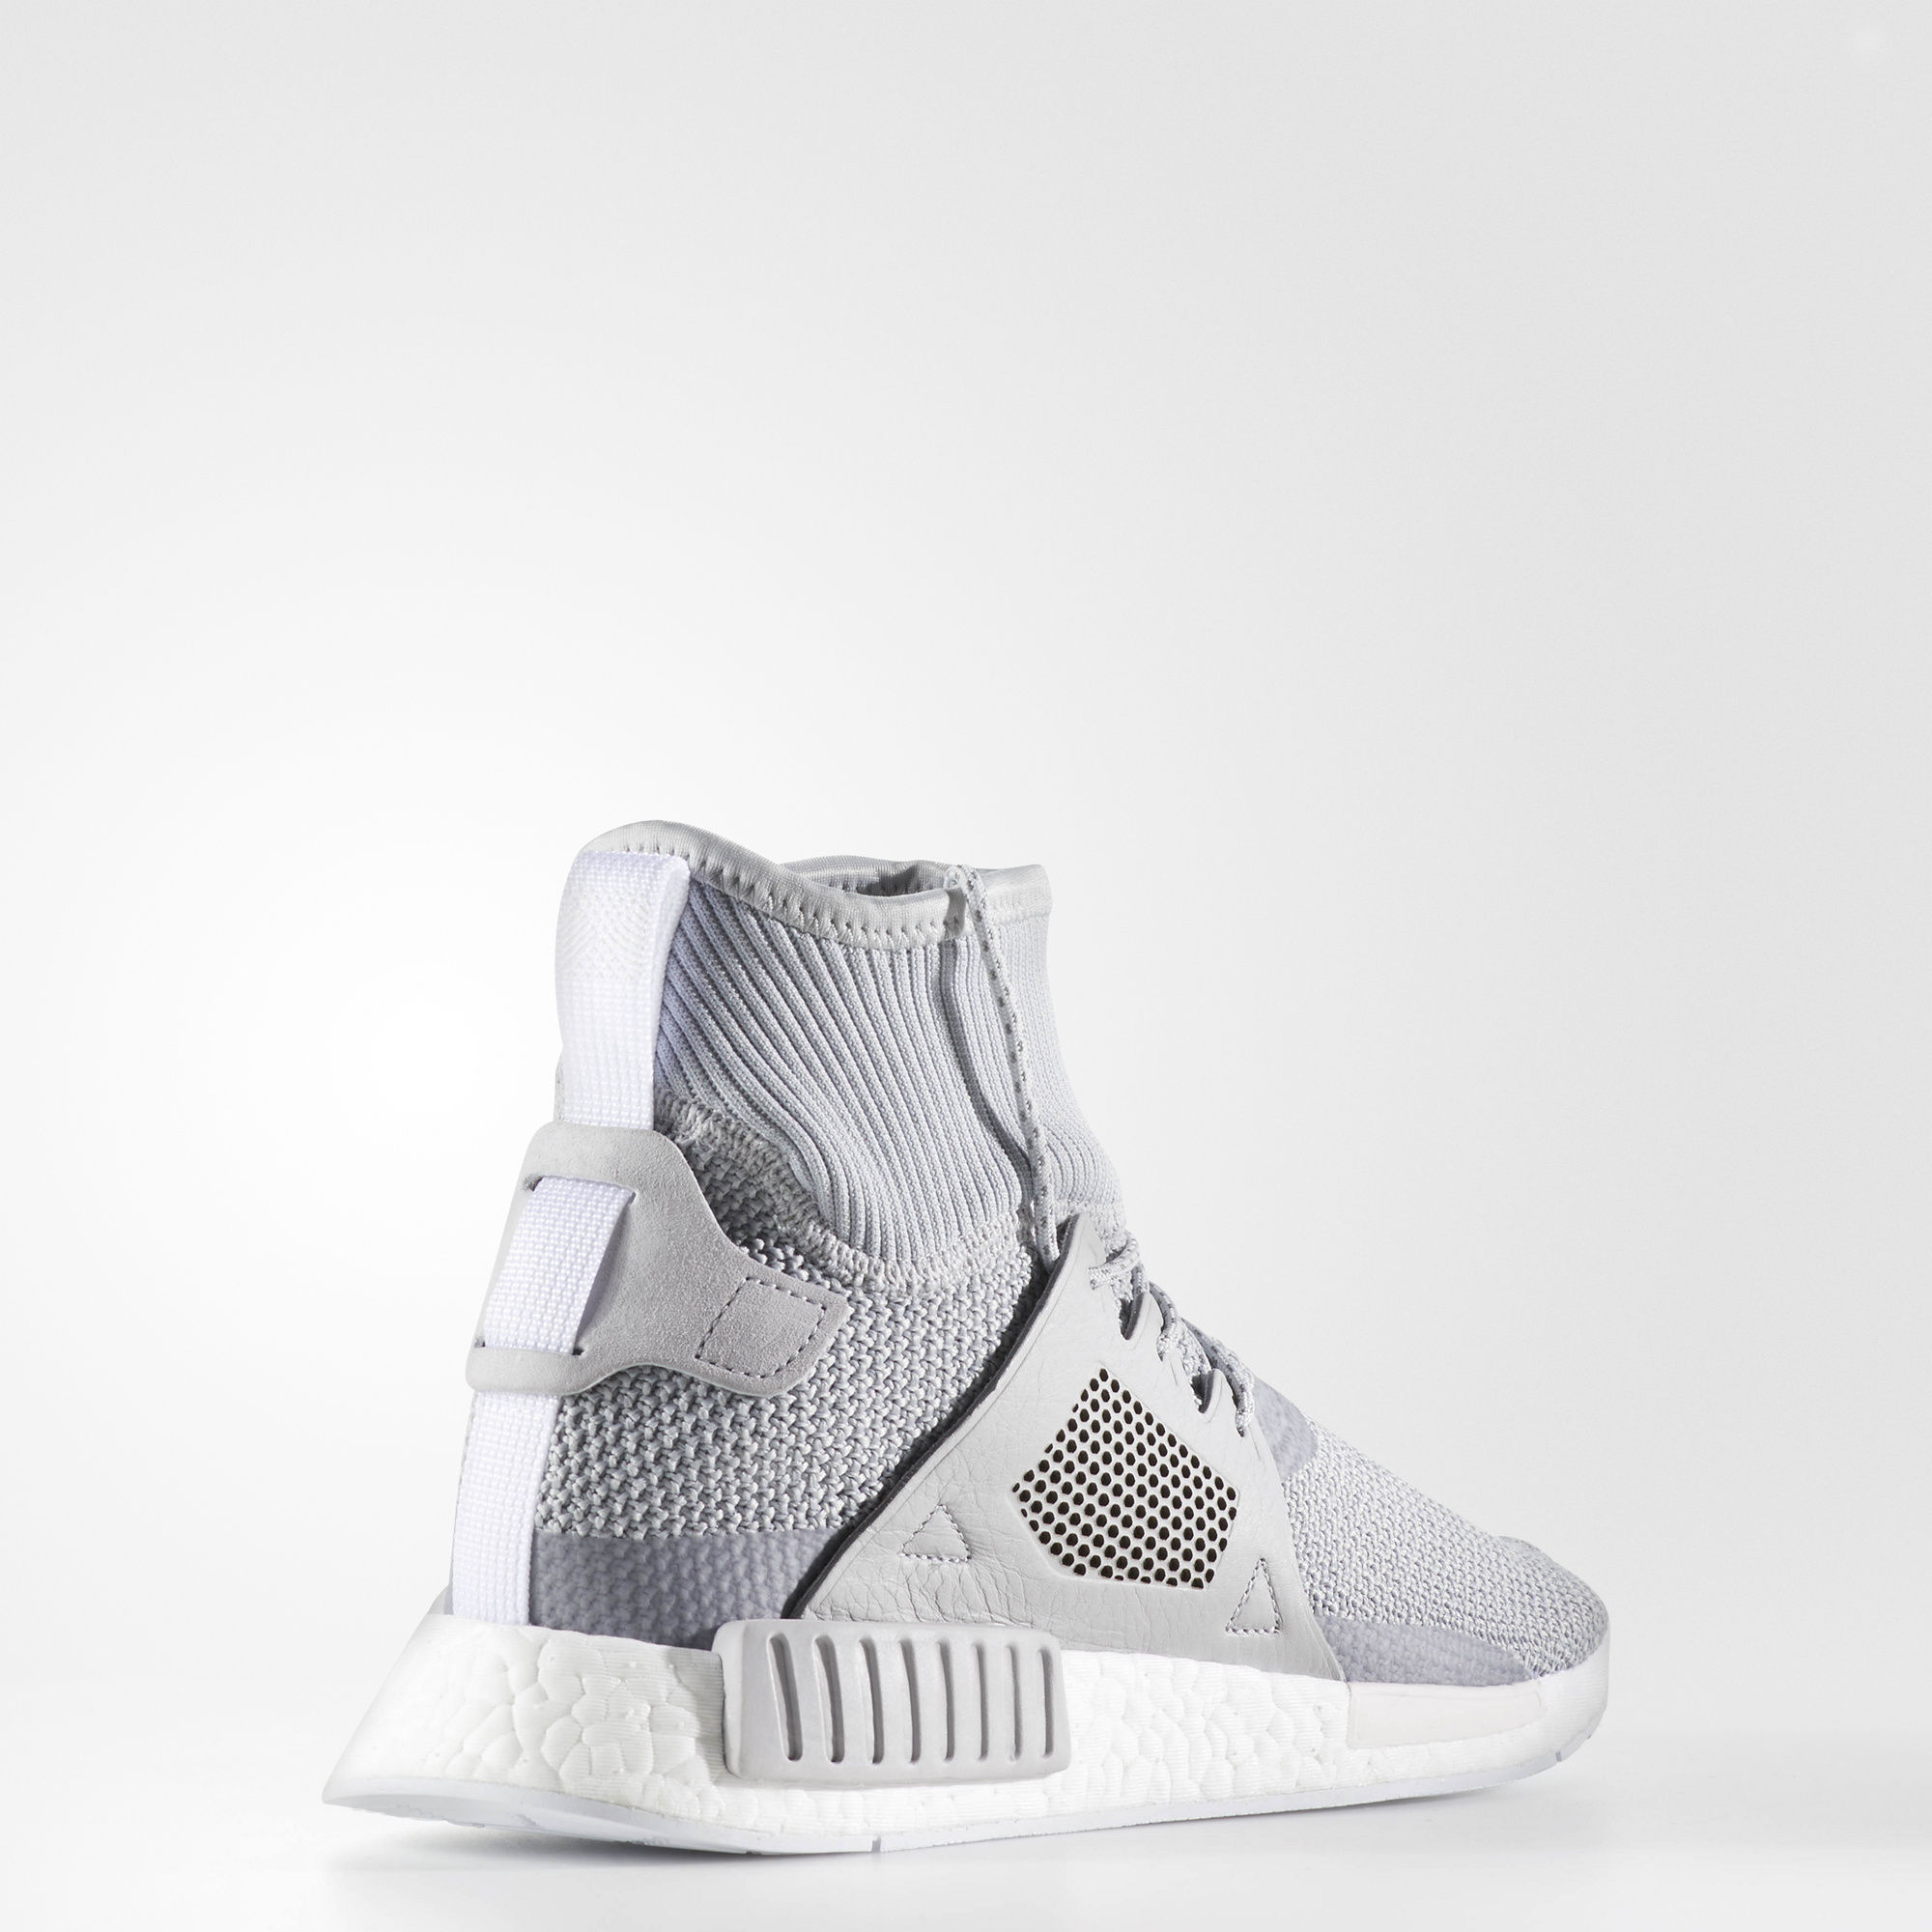 cheap for discount 34b14 82331 КРОССОВКИ NMD_XR1 WINTER M BZ0633